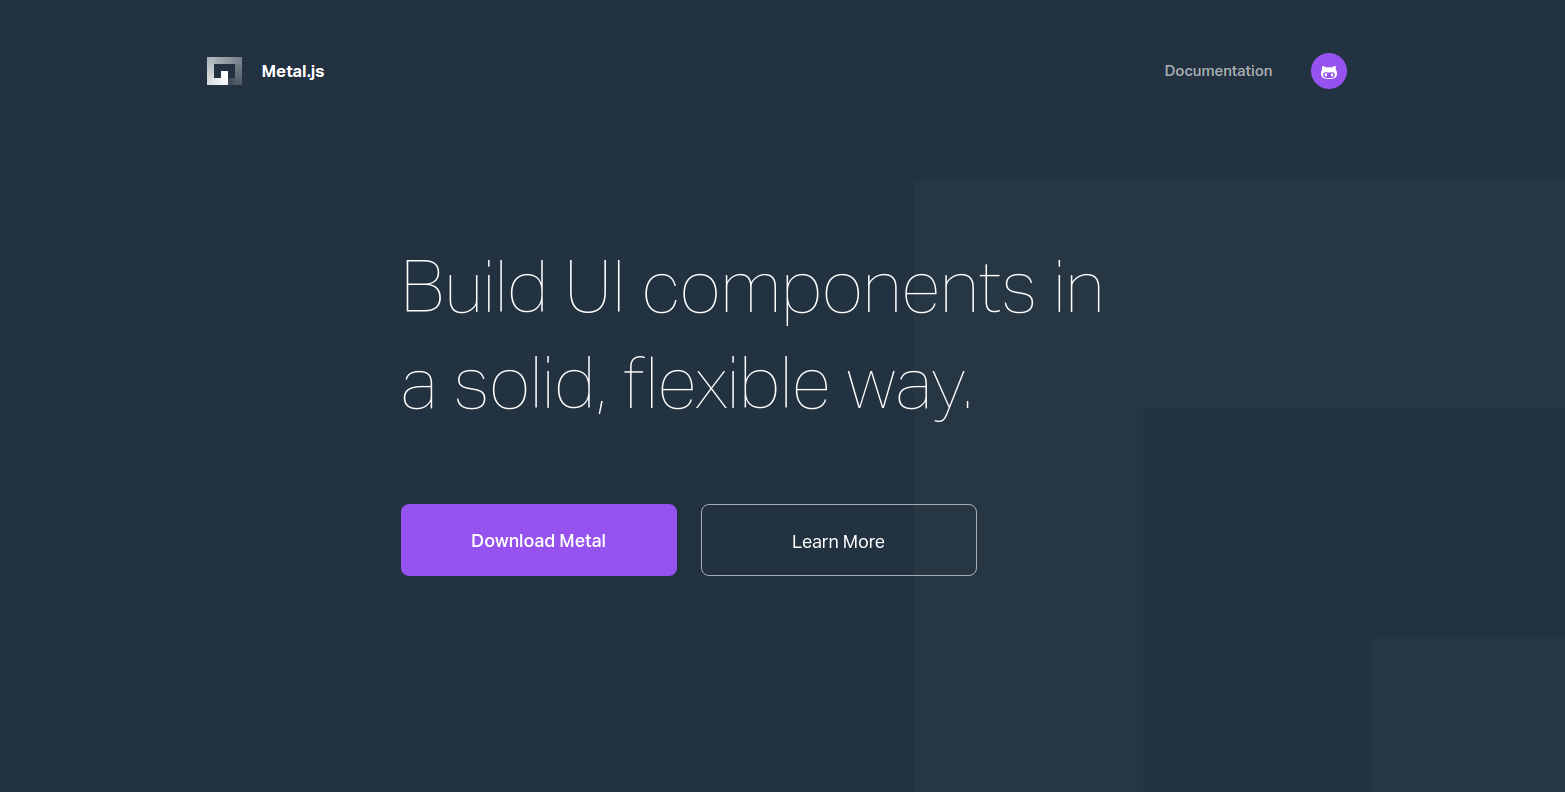 Figure 1: You can create UIs easily, thanks to Metal.js.